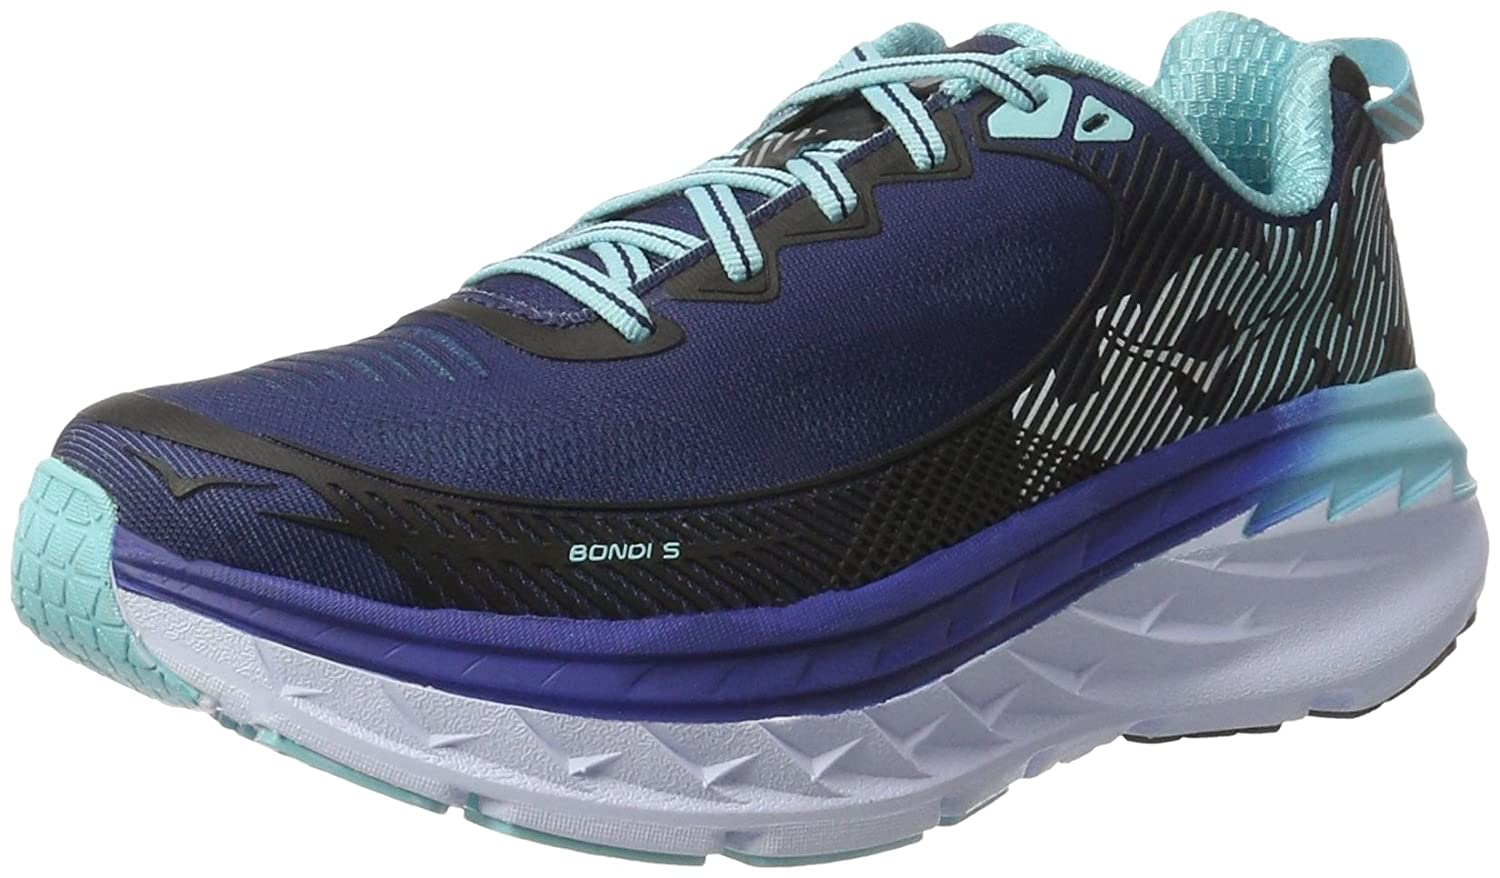 premium selection 4b410 dfd46 Hoka Bondi 5 Women's Running Shoes - SS17